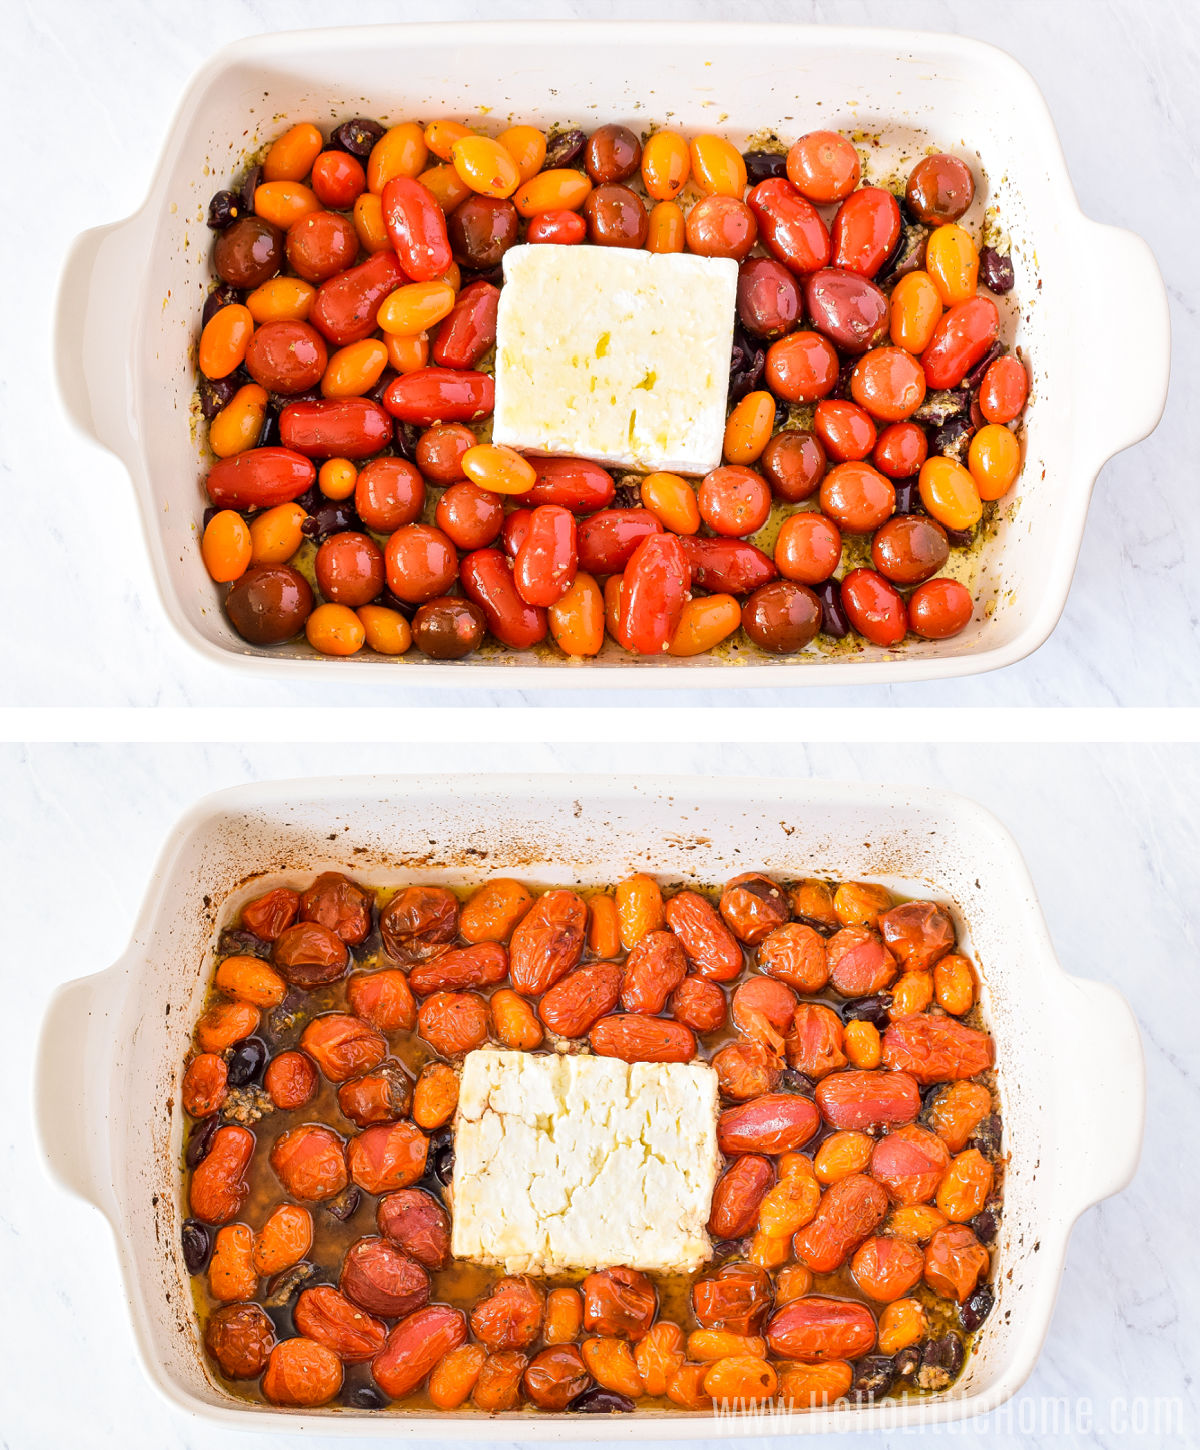 A photo collage showing the feta and tomatoes in a baking dish before and after baking.